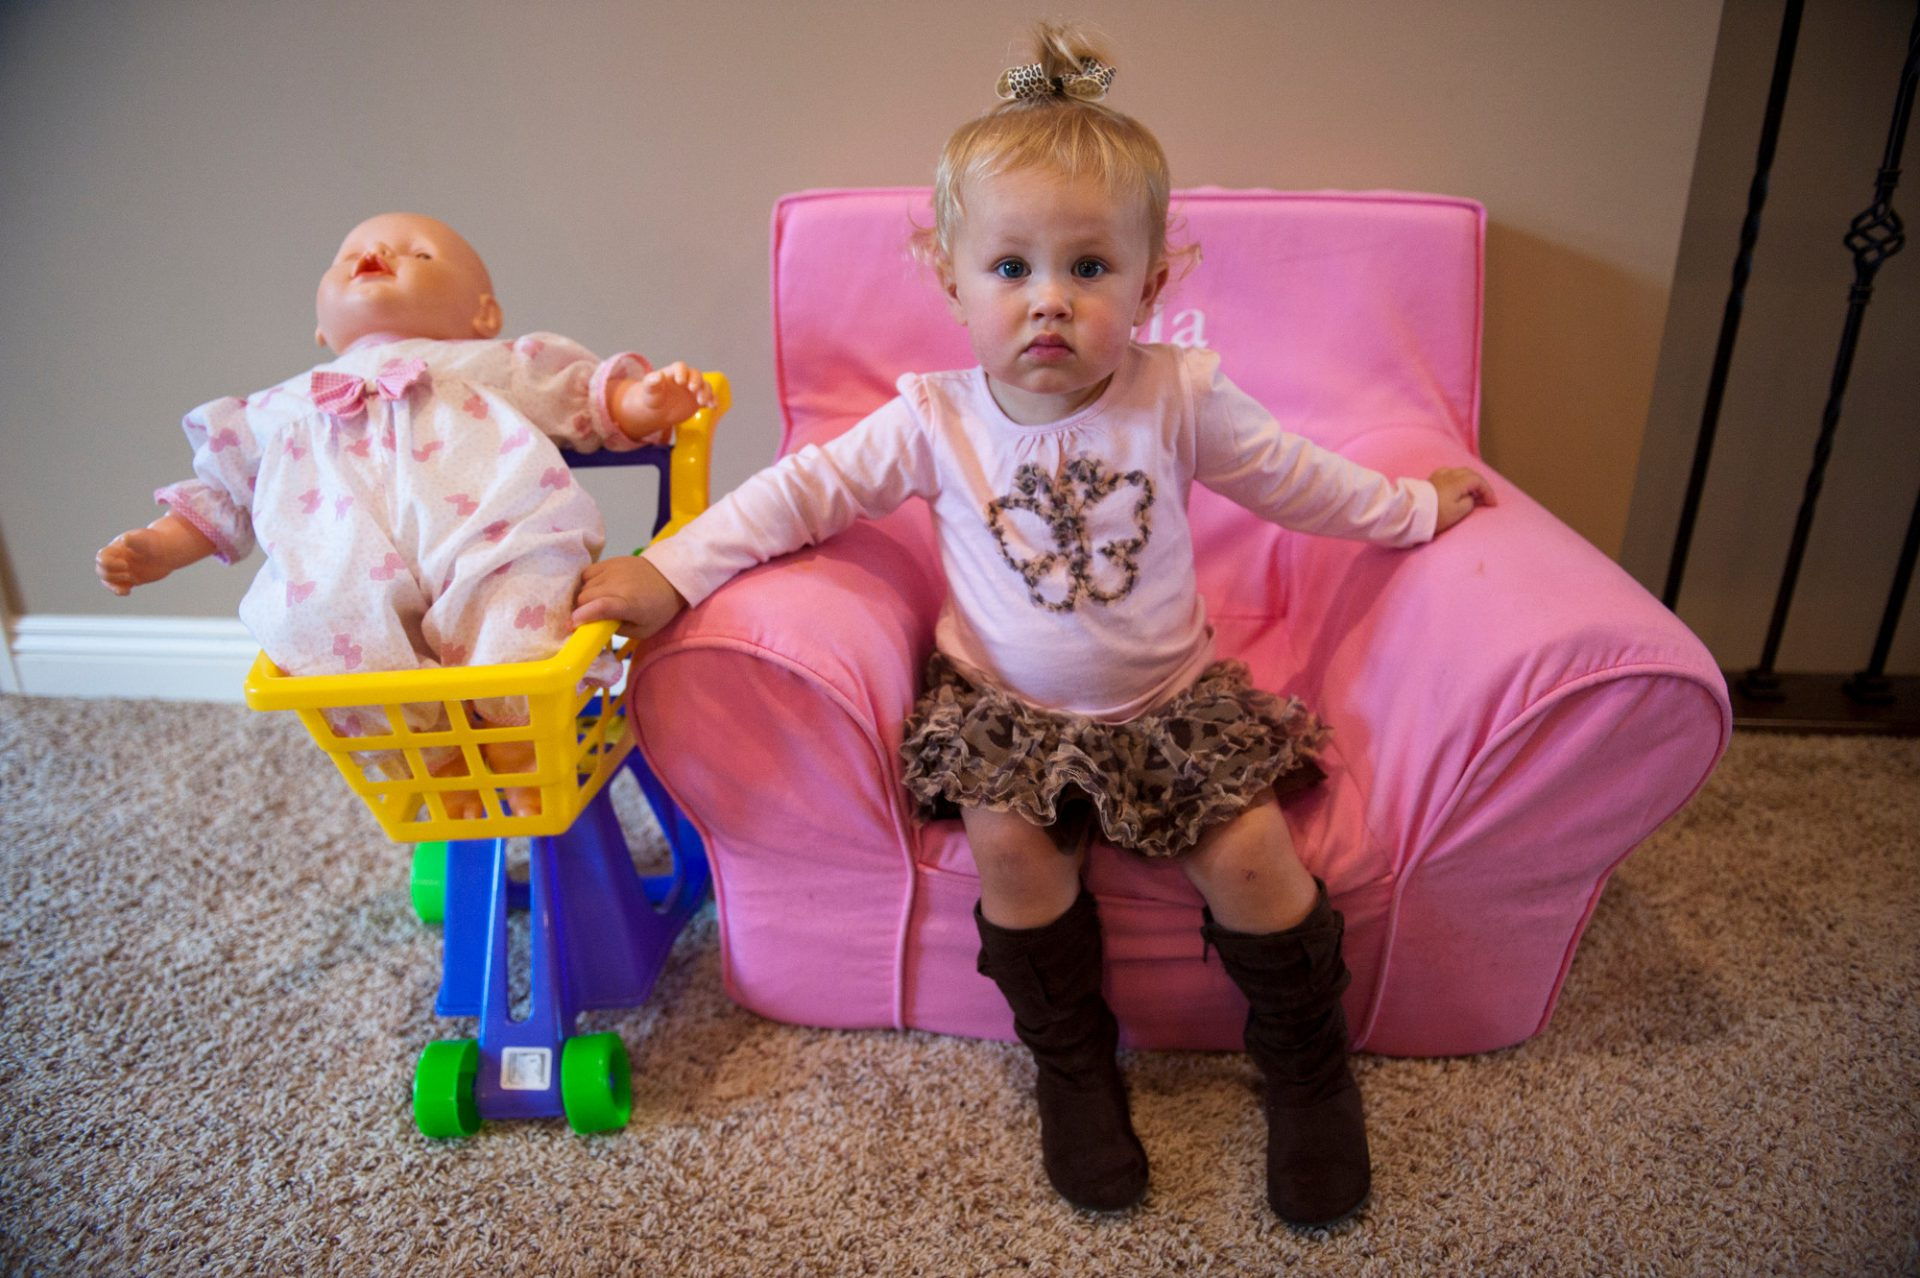 Photo: A little girl sits stoically on her pink chair in Lincoln, Nebraska.